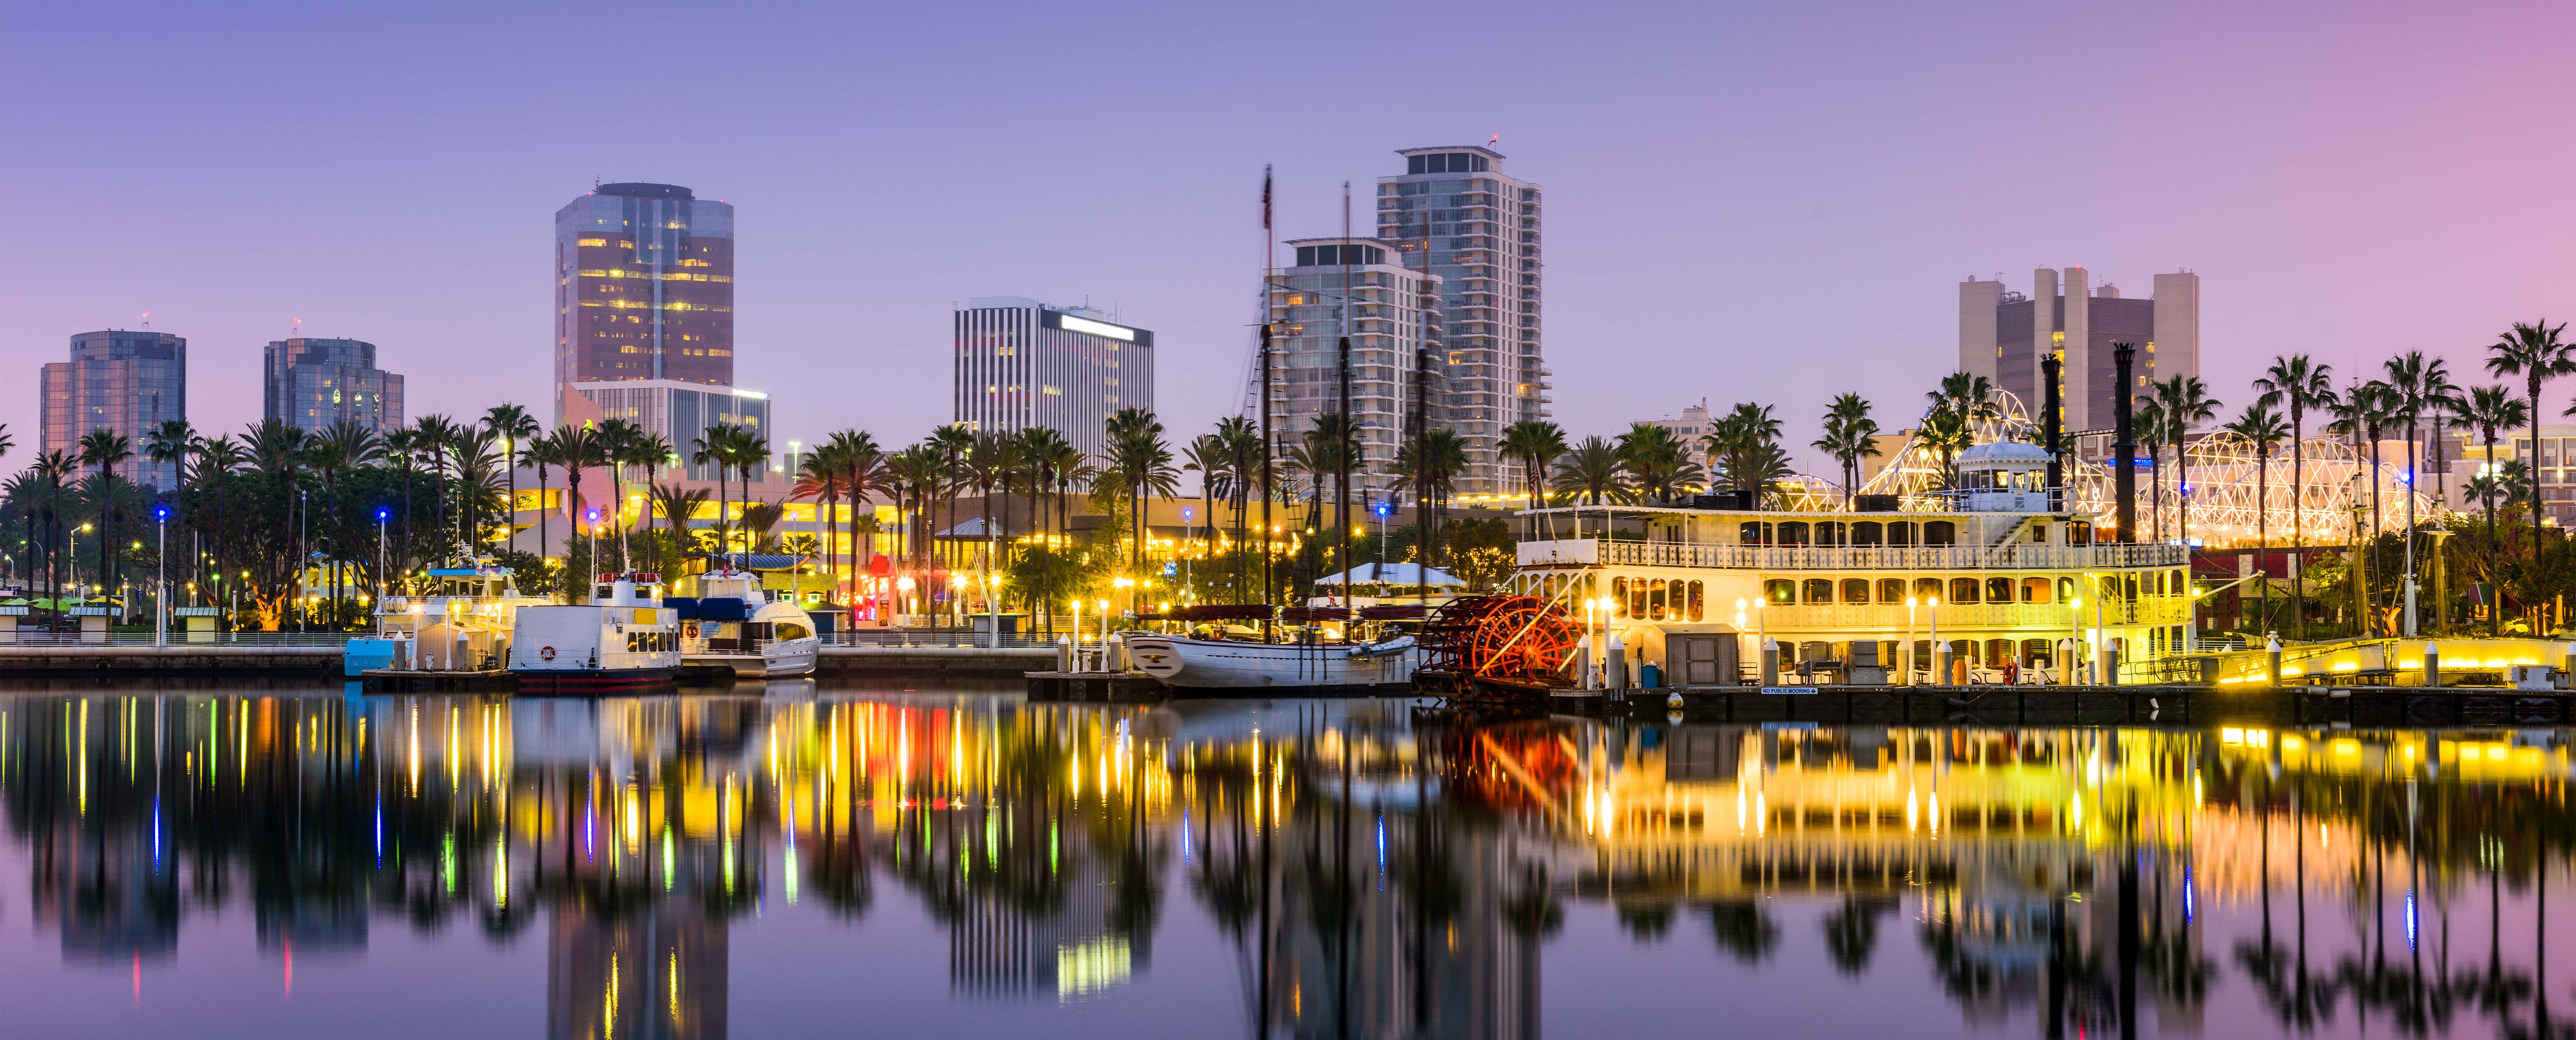 Long Beach, CA skyline at dusk